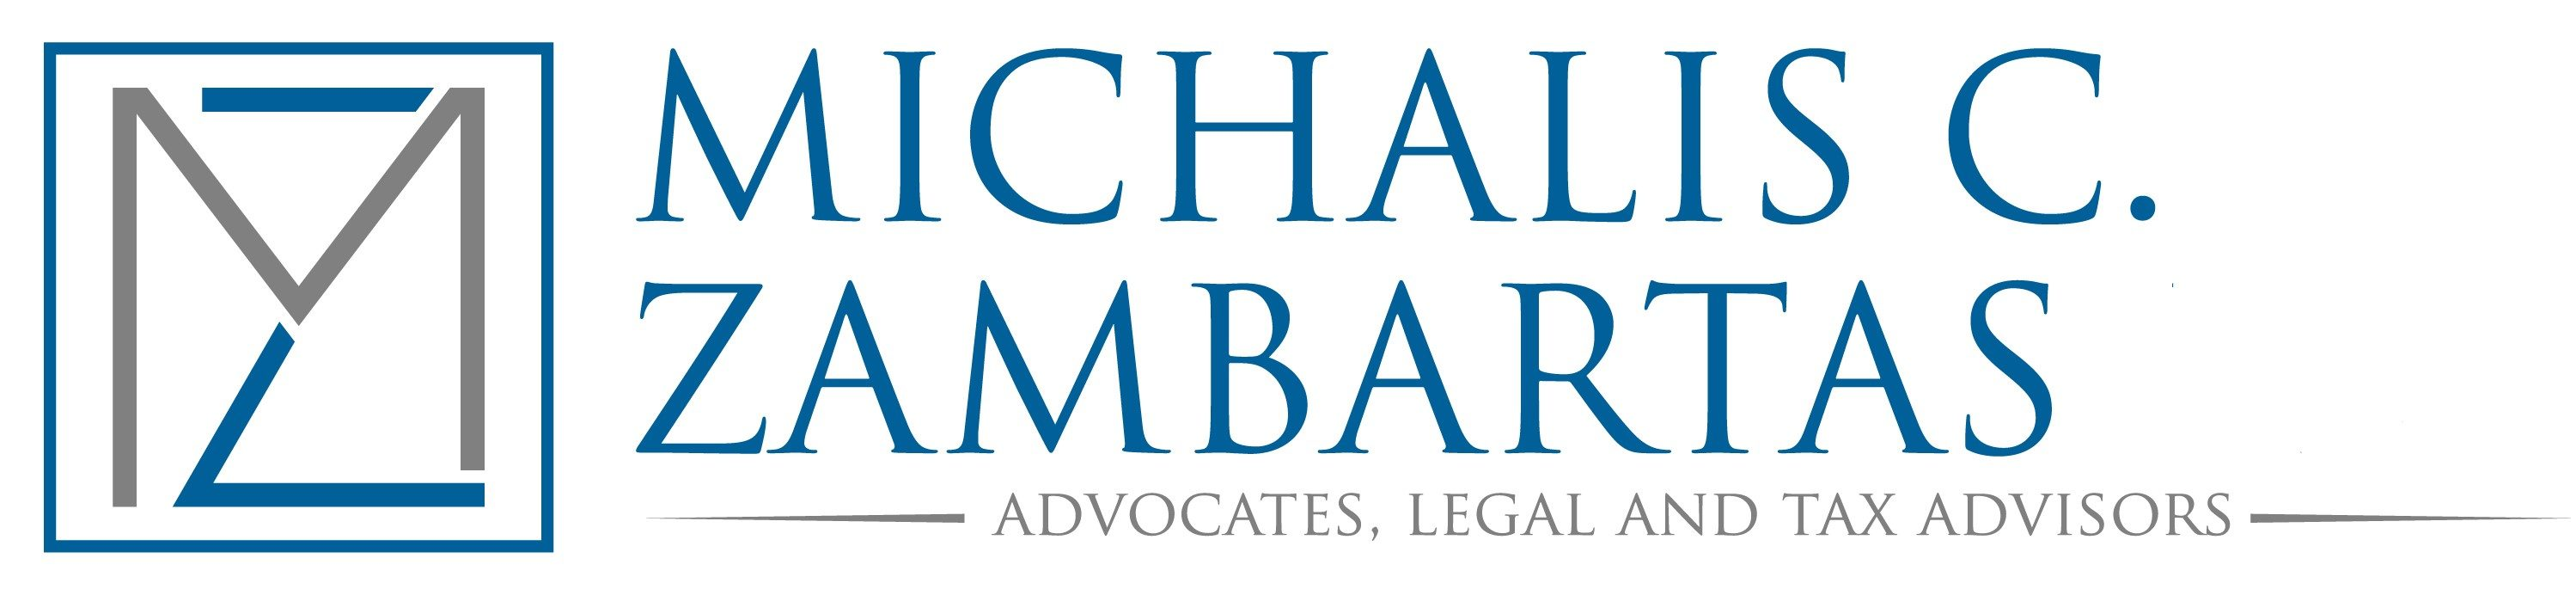 MICHALIS C. ZAMBARTAS, Advocates, Legal & Tax Advisors